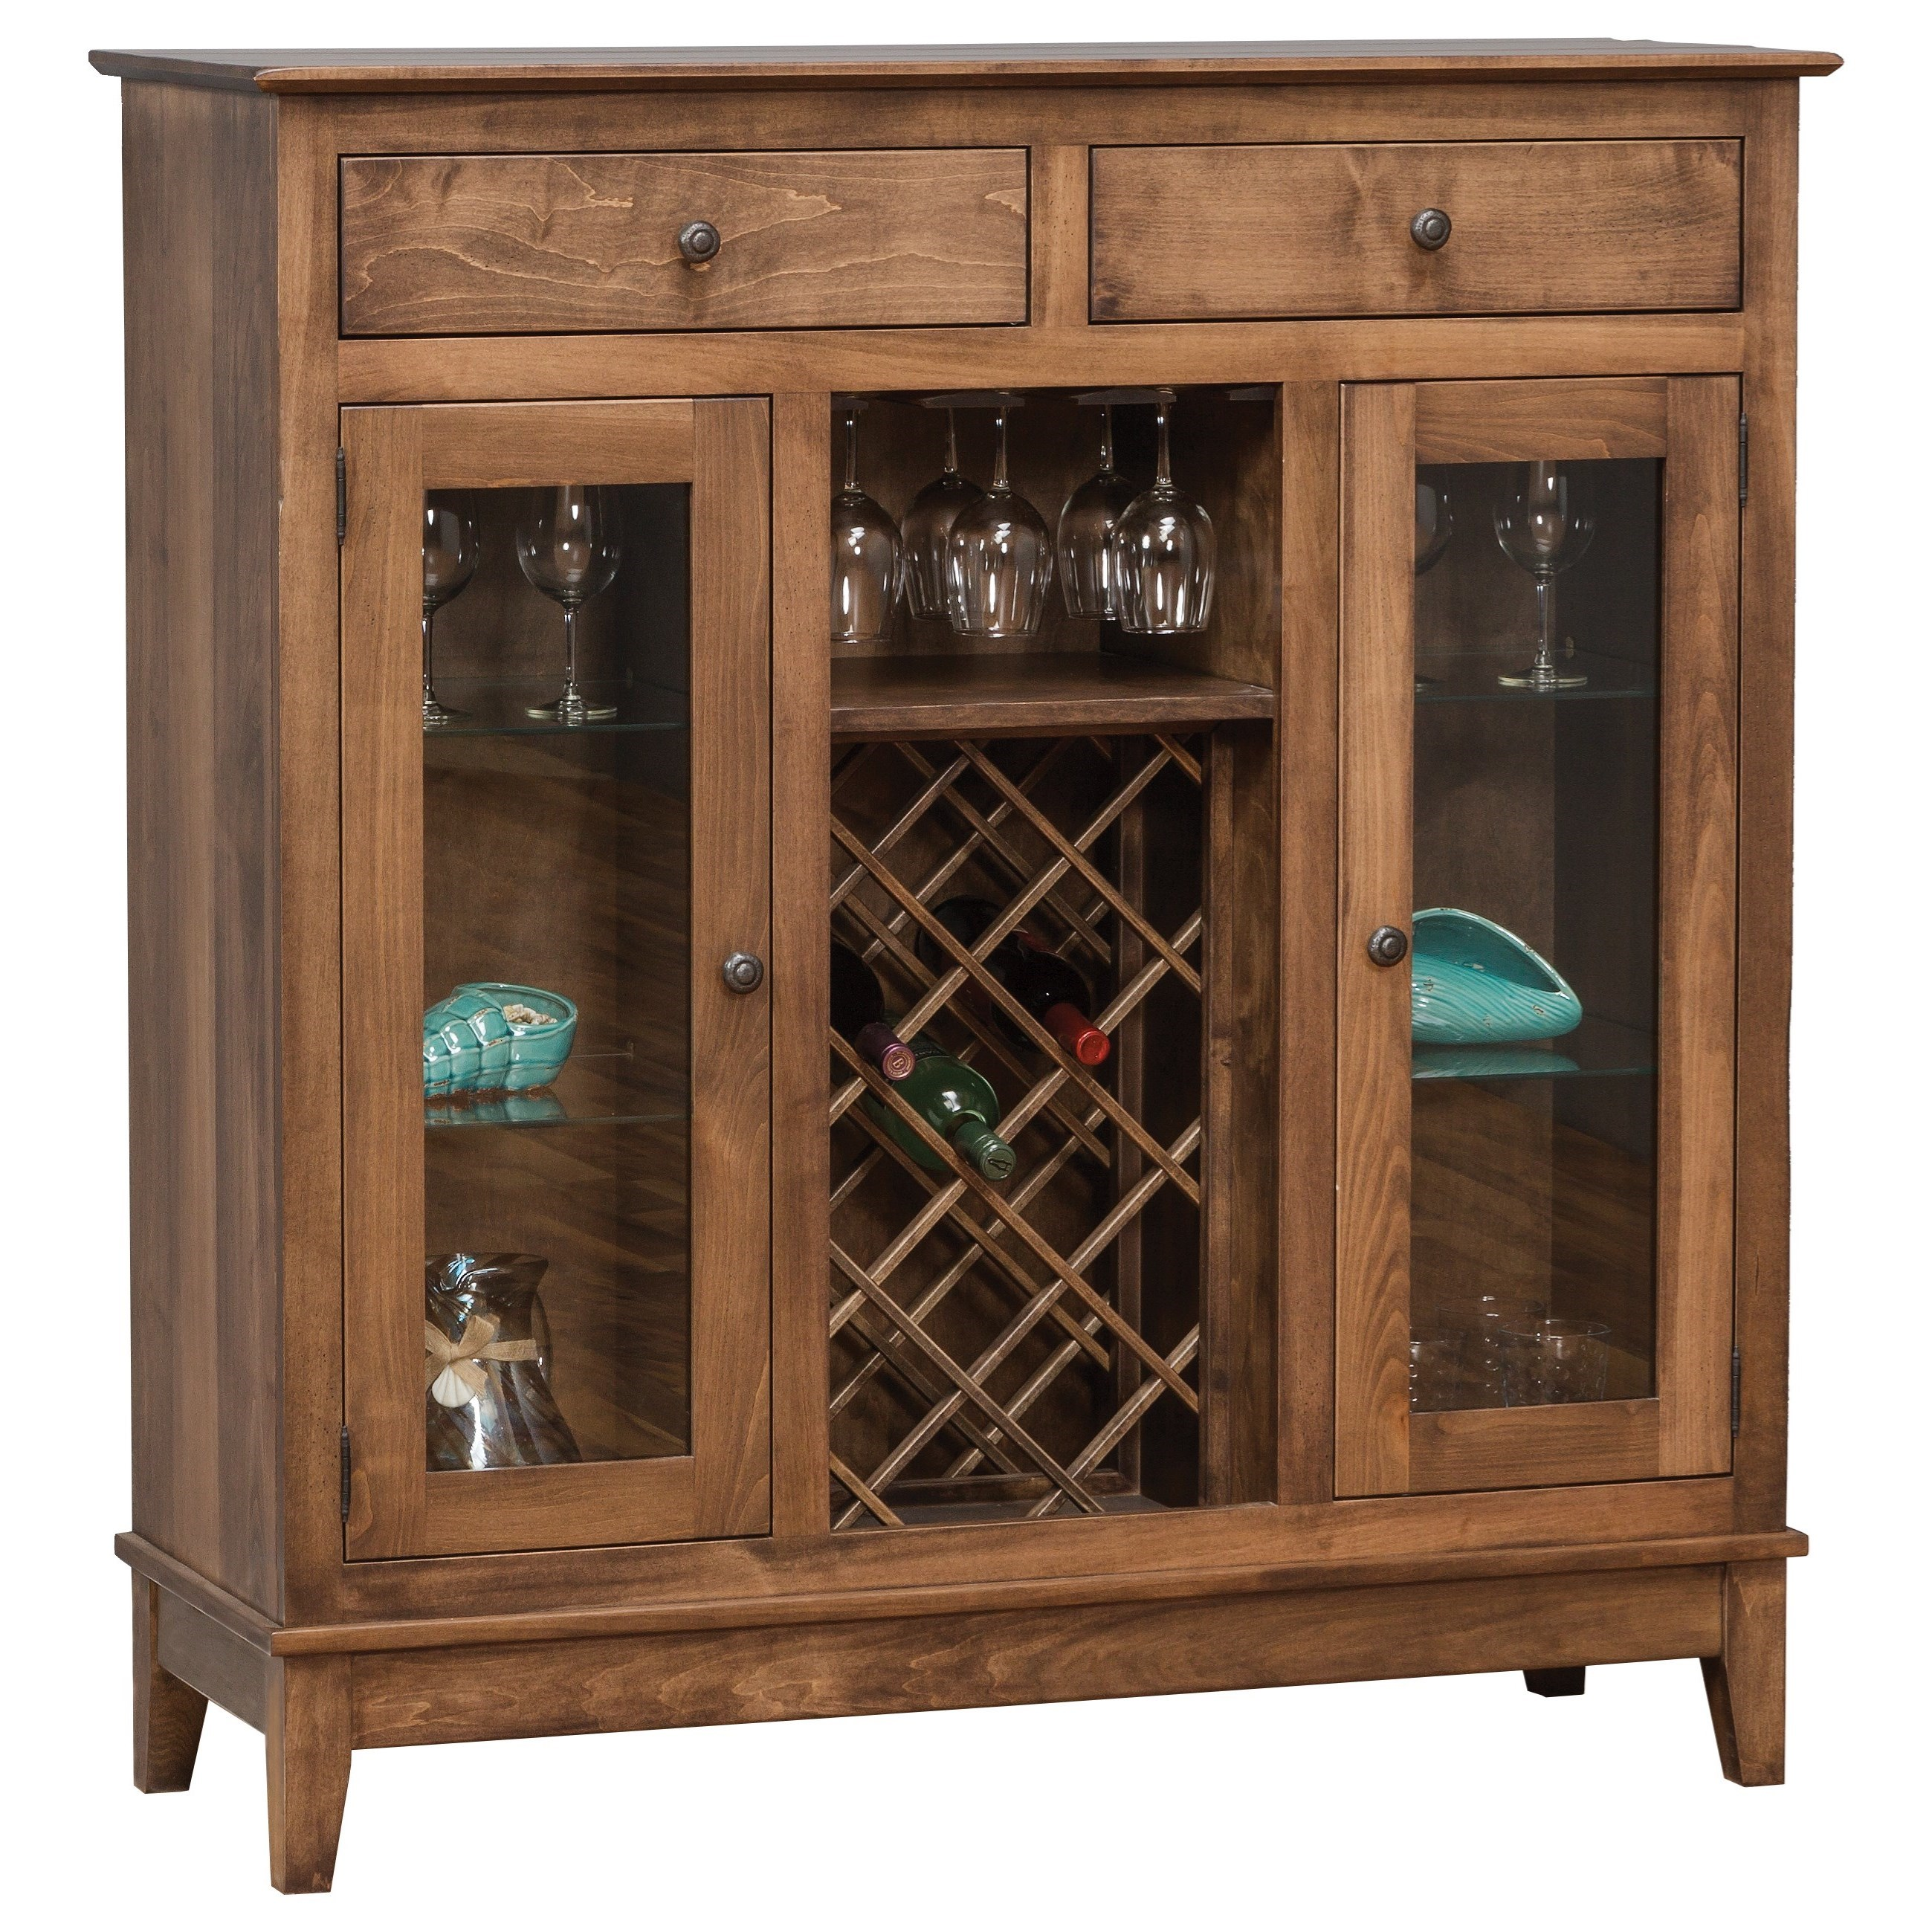 Dining Storage Shaker Wine Cabinet by Daniel's Amish at H.L. Stephens